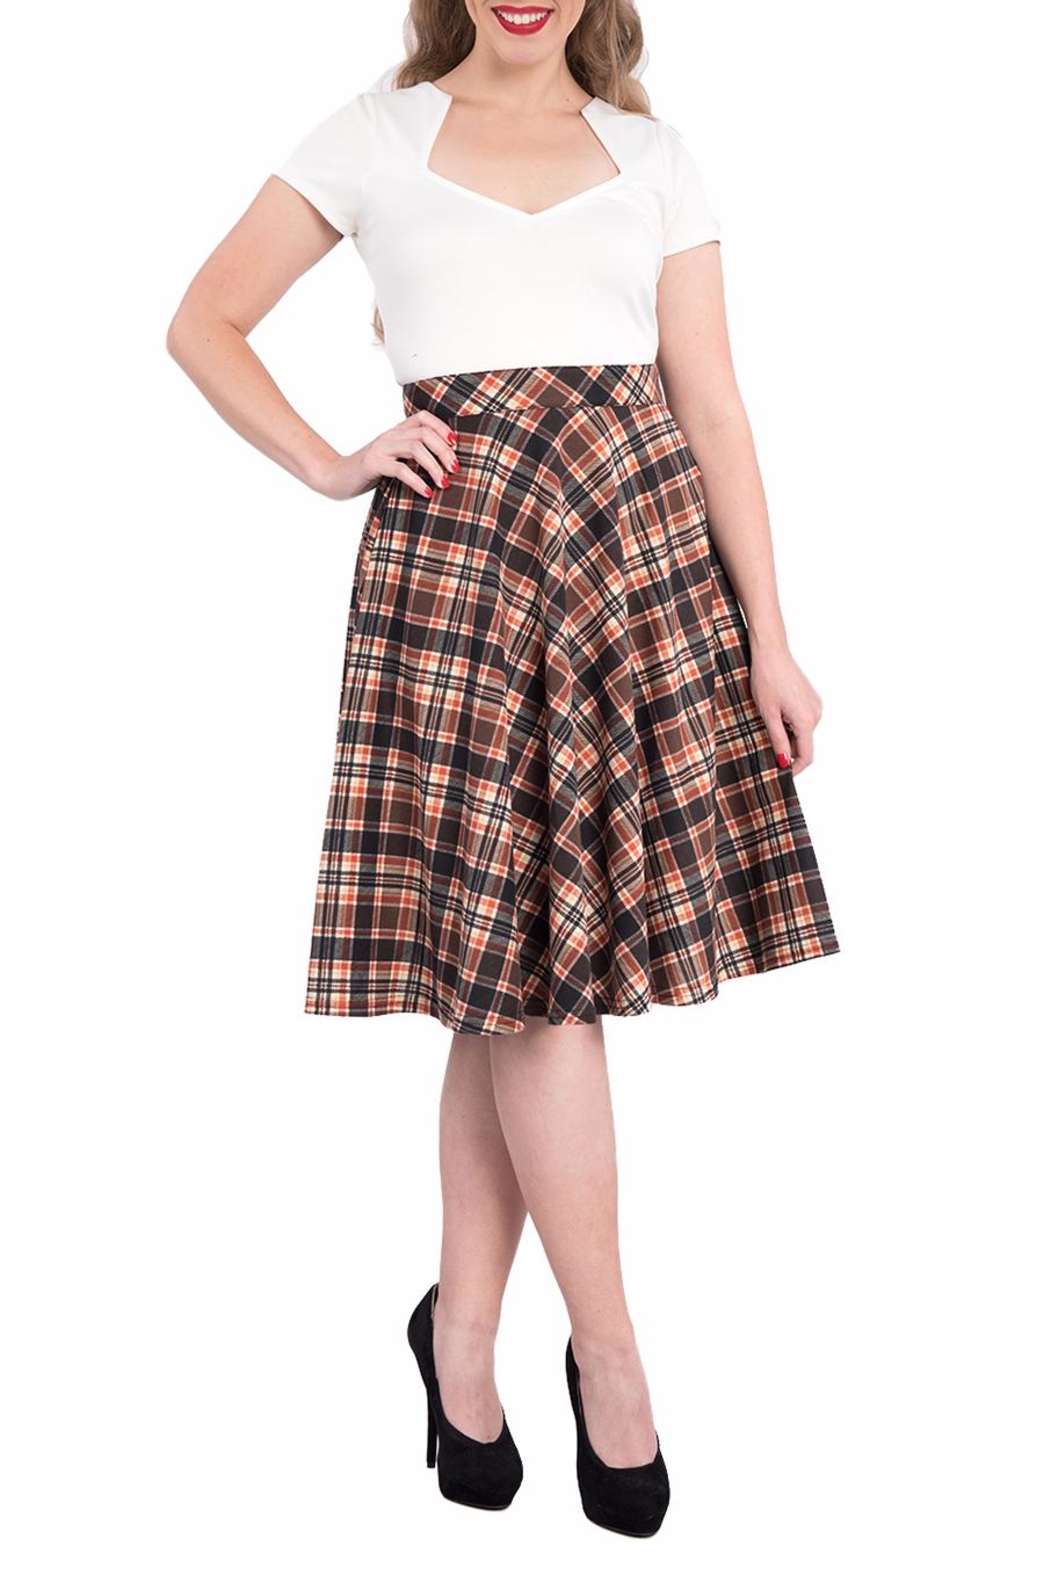 Steady Clothing Plaid Circle Skirt - Front Cropped Image